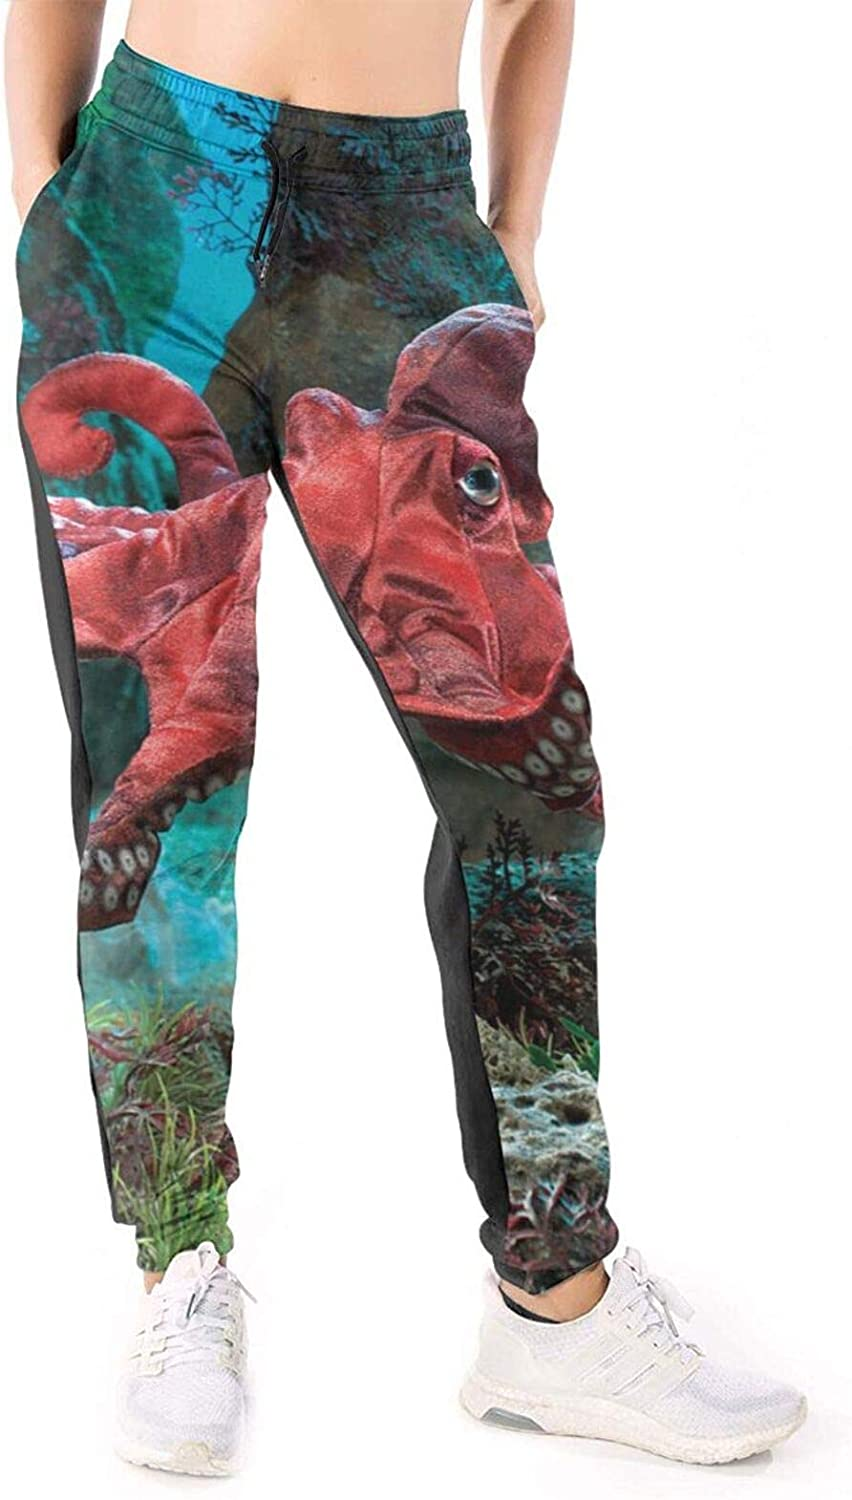 Women Joggers Pants Red Sea Monster Octopus Athletic Sweatpants with Pockets Casual Trousers Baggy